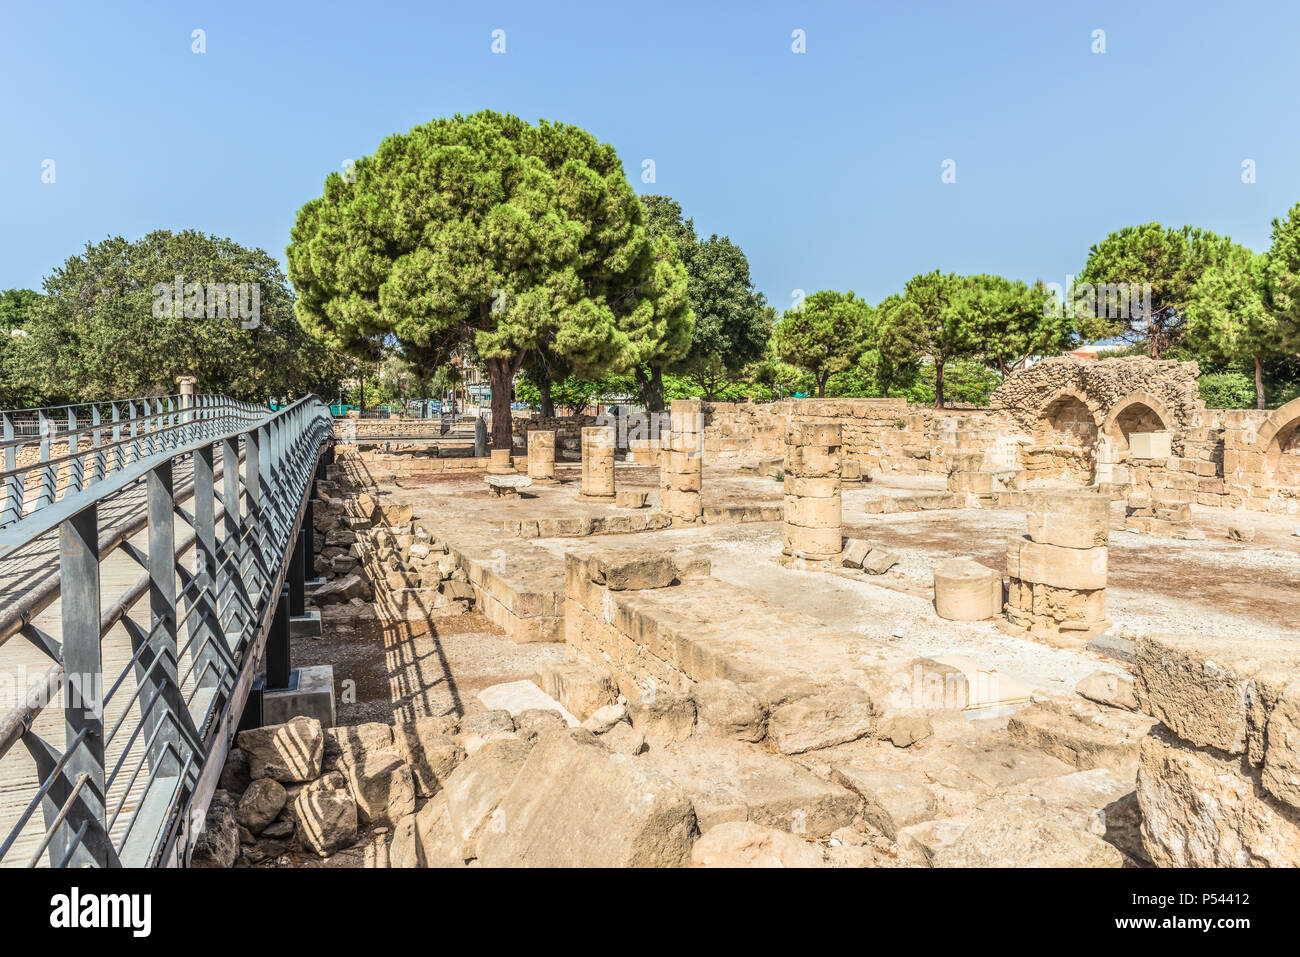 Ancient Roman ruins in the archaeological park of Paphos, Cyprus. Stock Photo